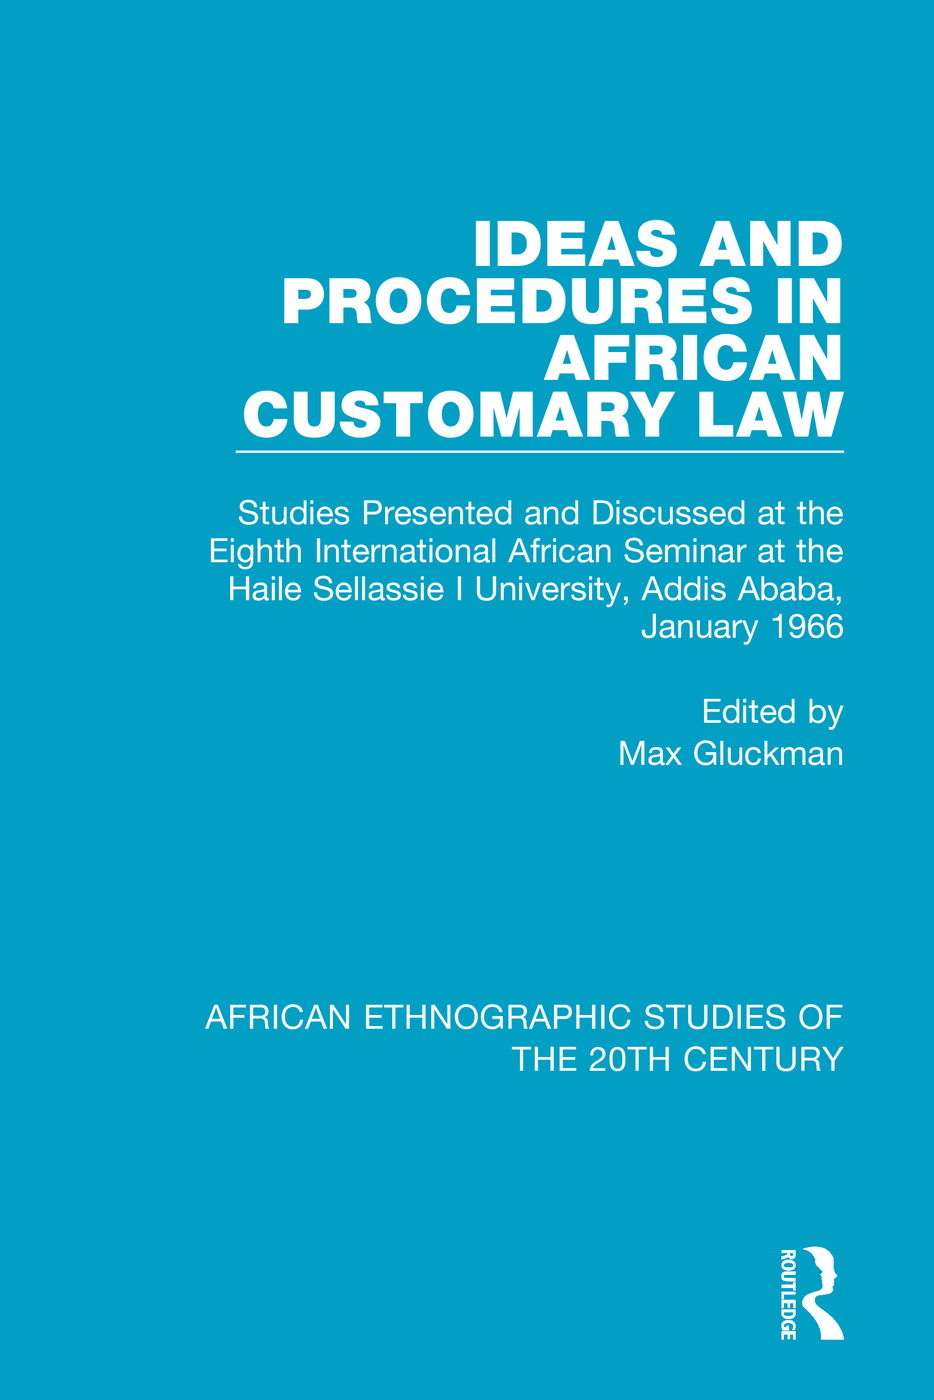 Ideas and Procedures in African Customary Law: Studies Presented and Discussed at the Eighth International African Seminar at the Haile Sellassie I University, Addis Ababa, January 1966 book cover